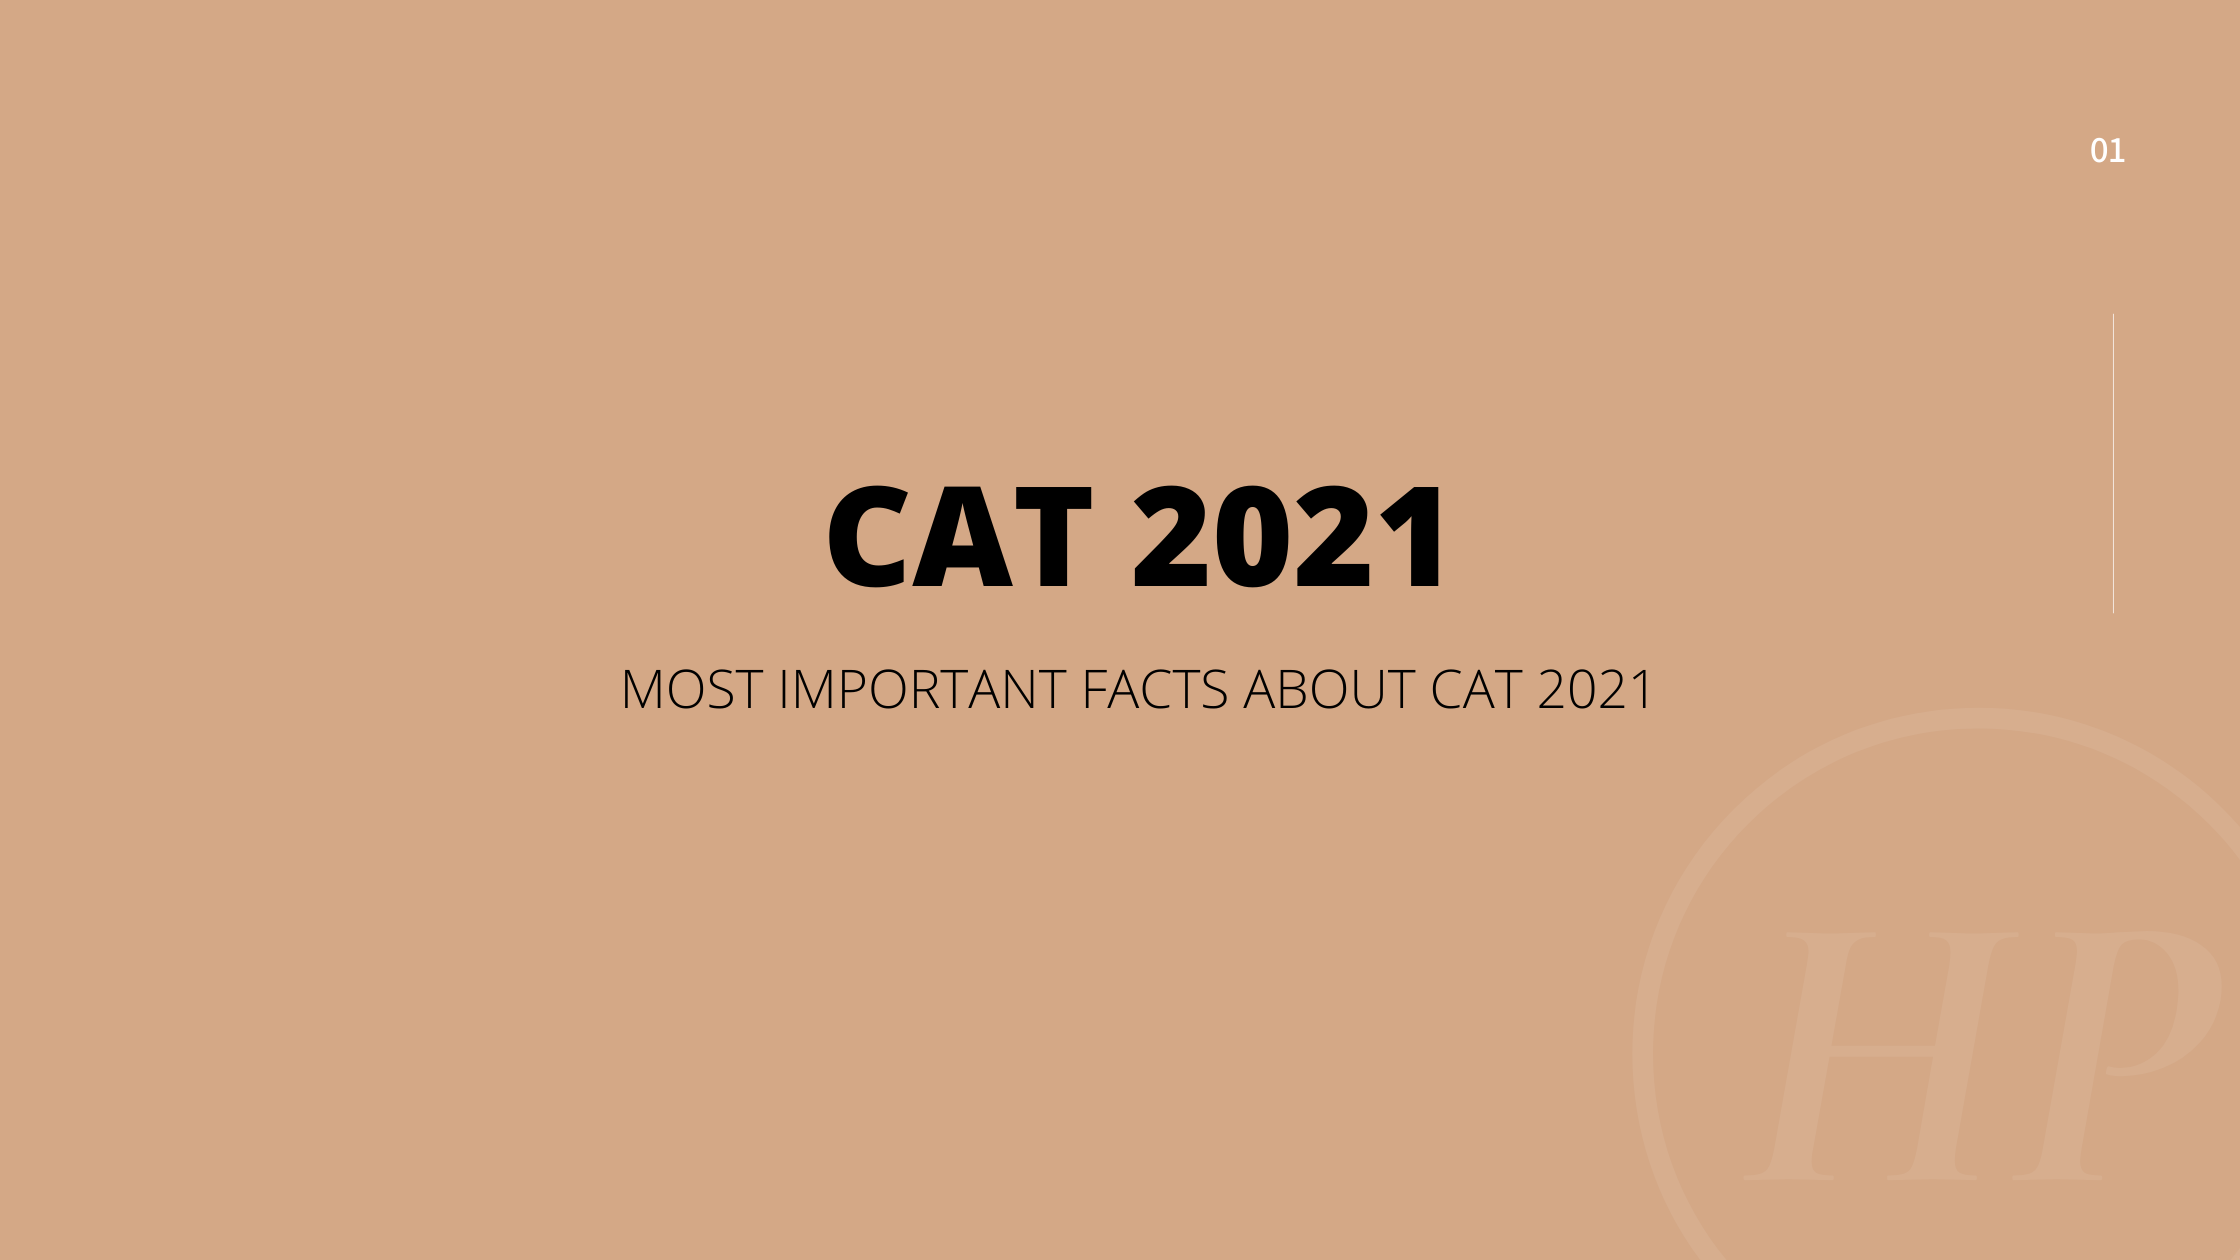 Interesting facts about cat 2021